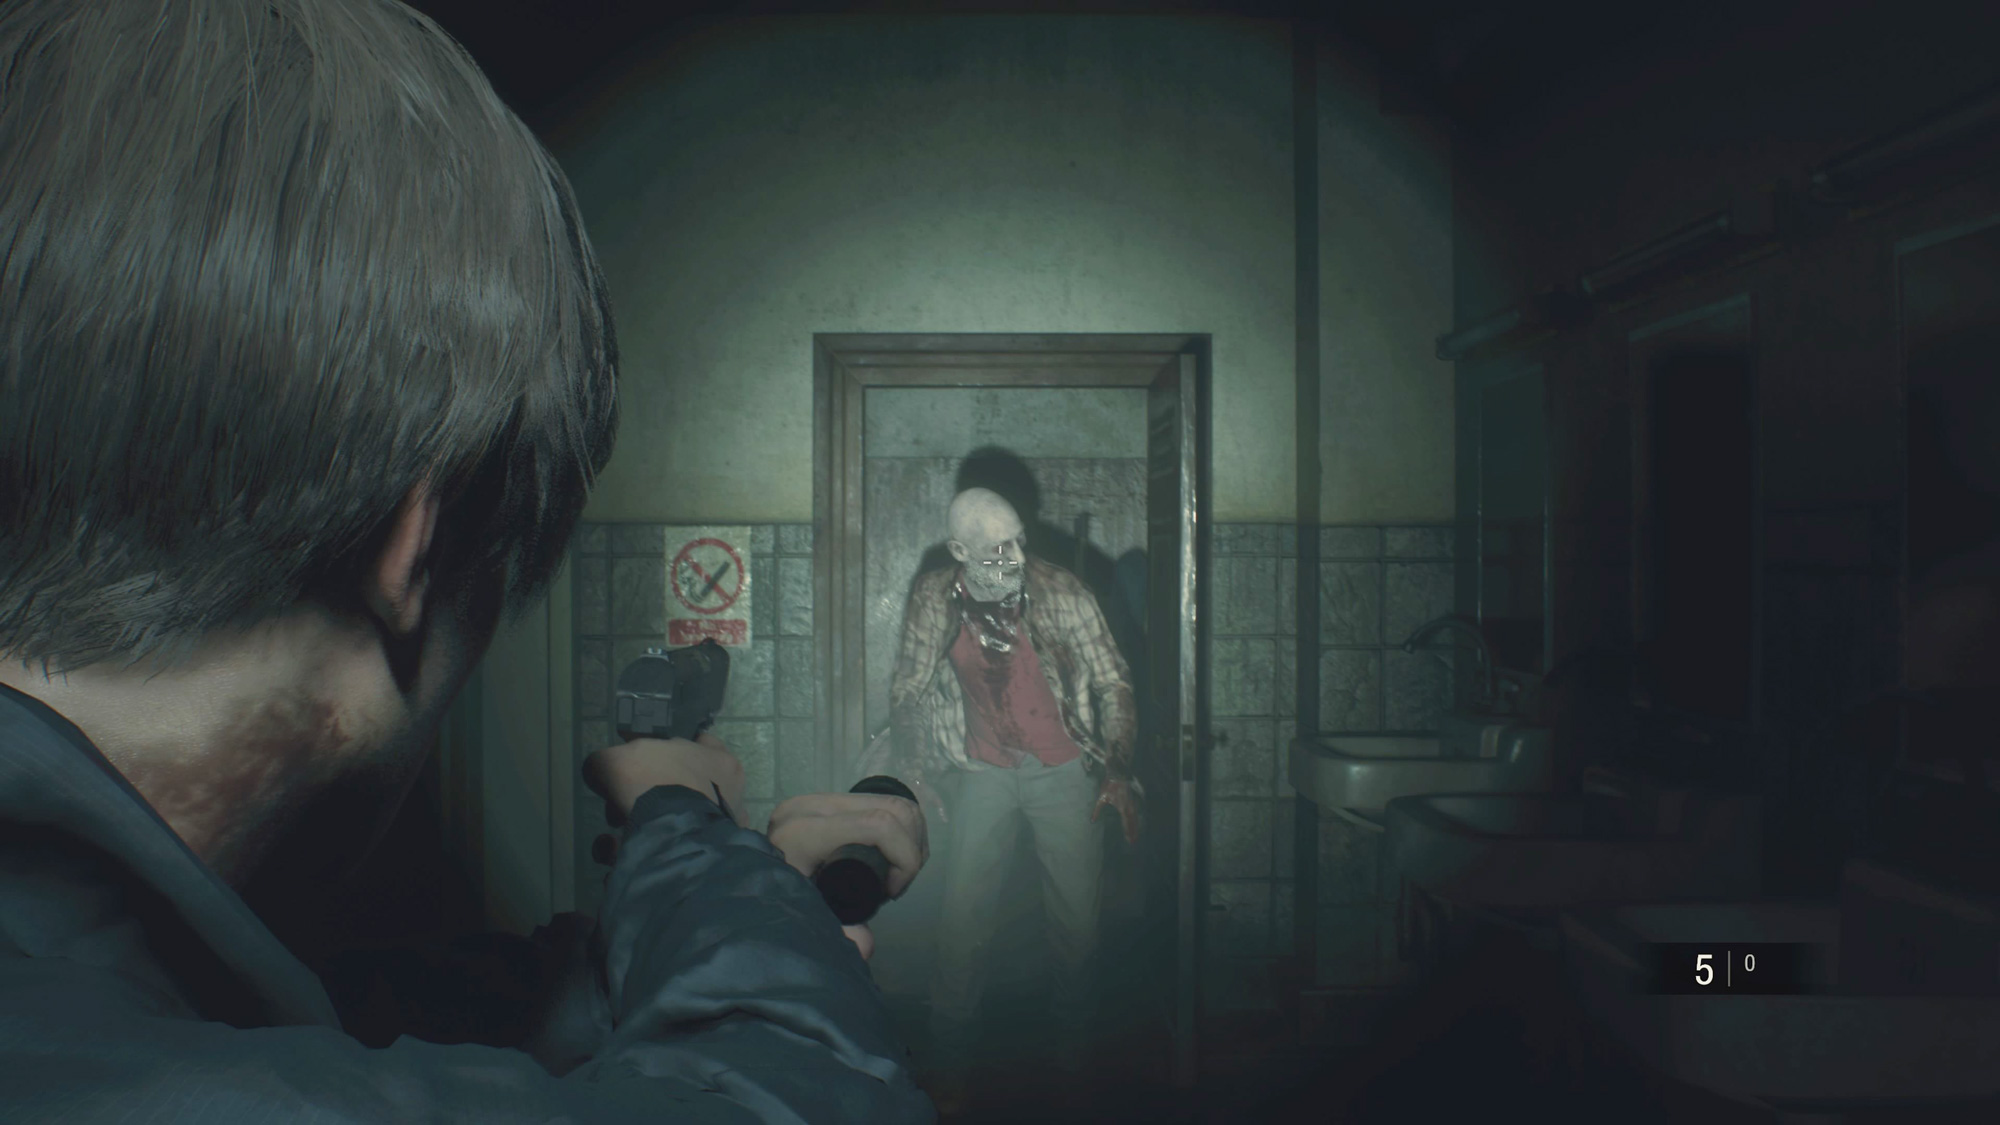 Resident Evil 8 Release Date Characters Ps5 Rumors Leaks And More Tom S Guide